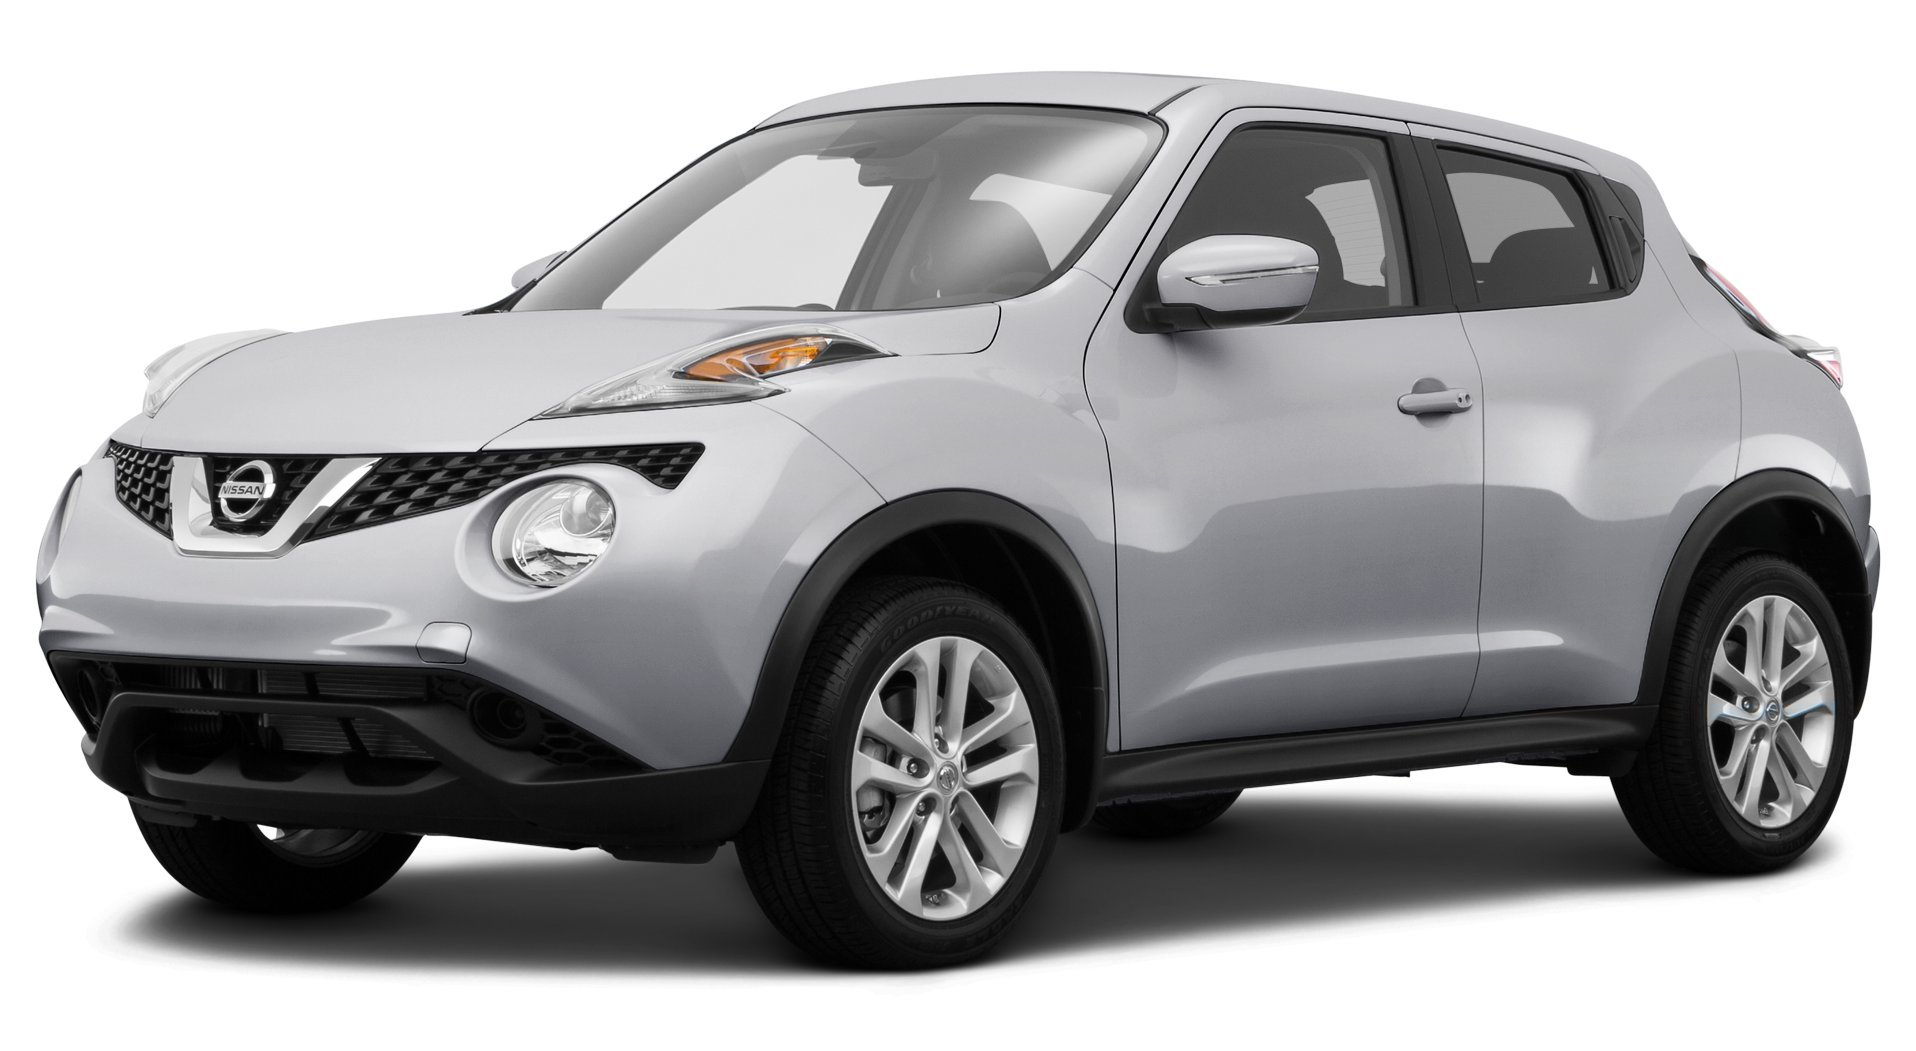 2015 nissan juke reviews images and specs vehicles. Black Bedroom Furniture Sets. Home Design Ideas